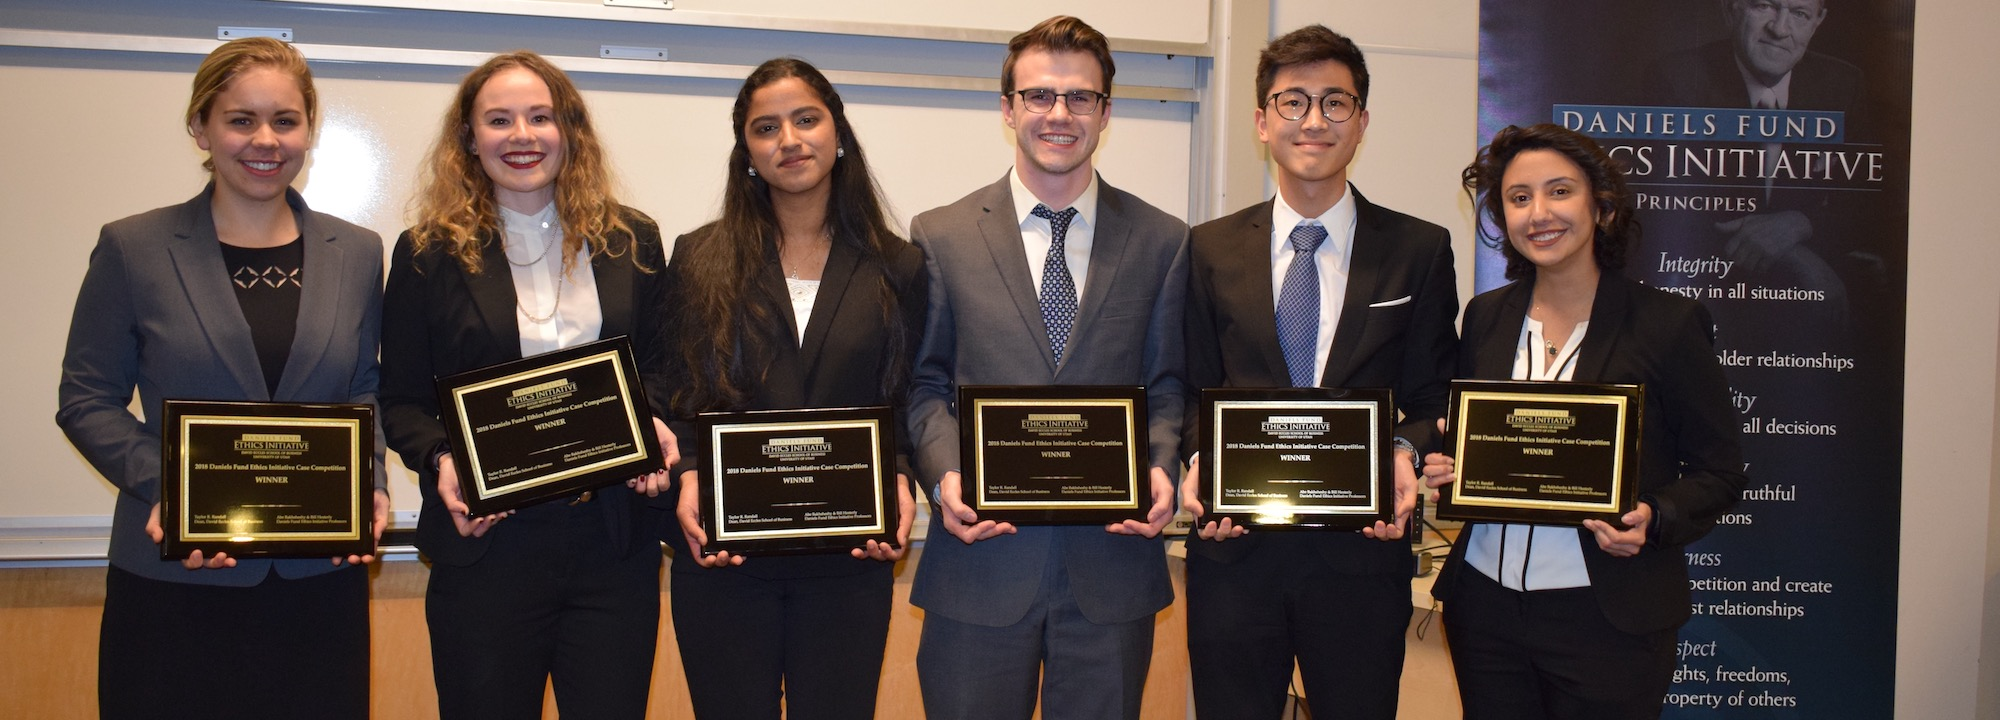 daniels fund case competition hero